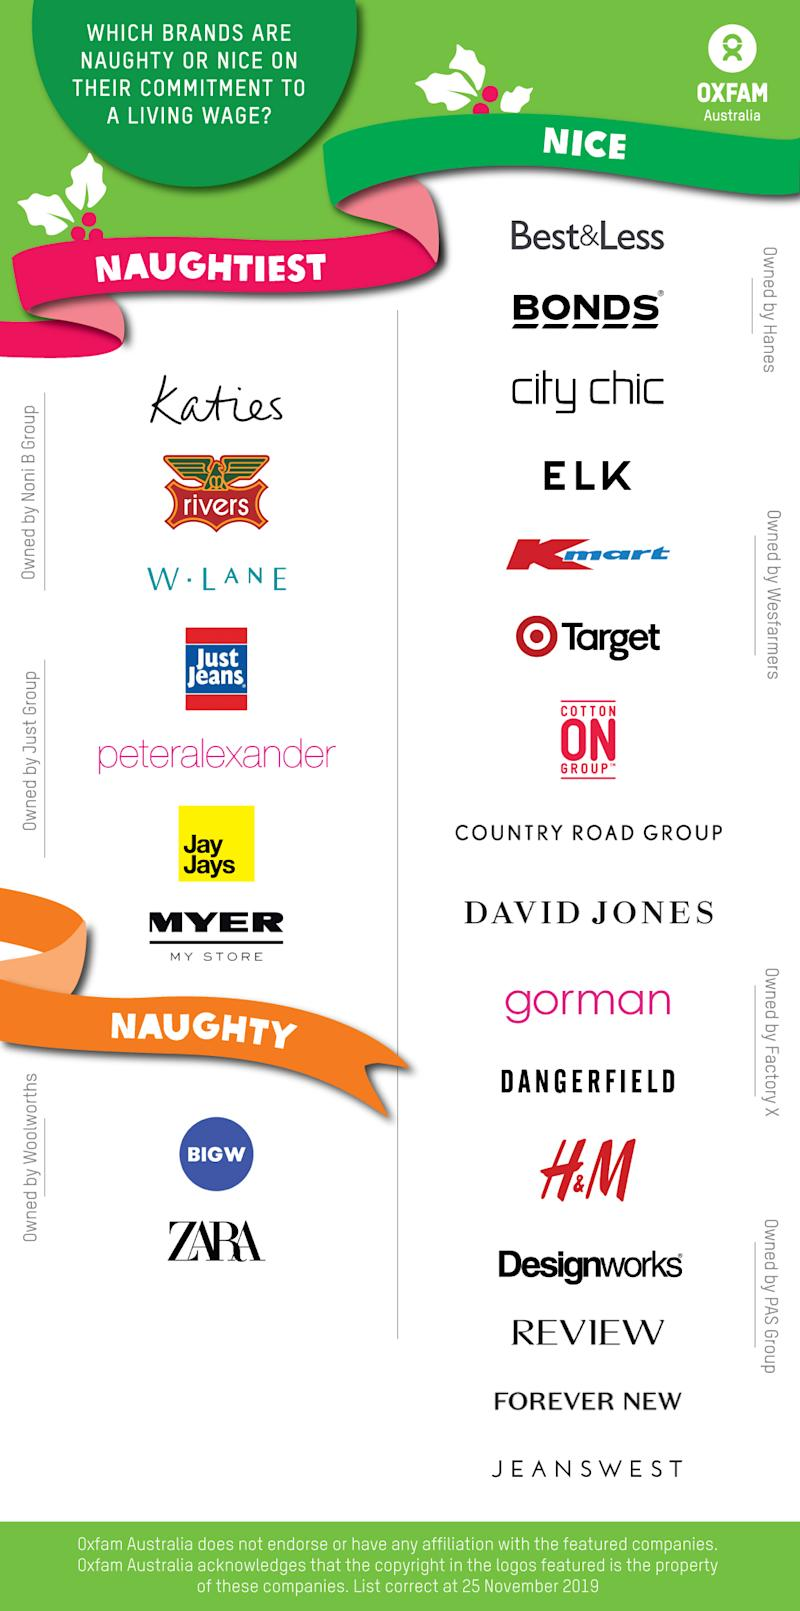 Pictured: Oxfam 2019 naughty or nice list of Australian fashion brands. Image: Oxfam